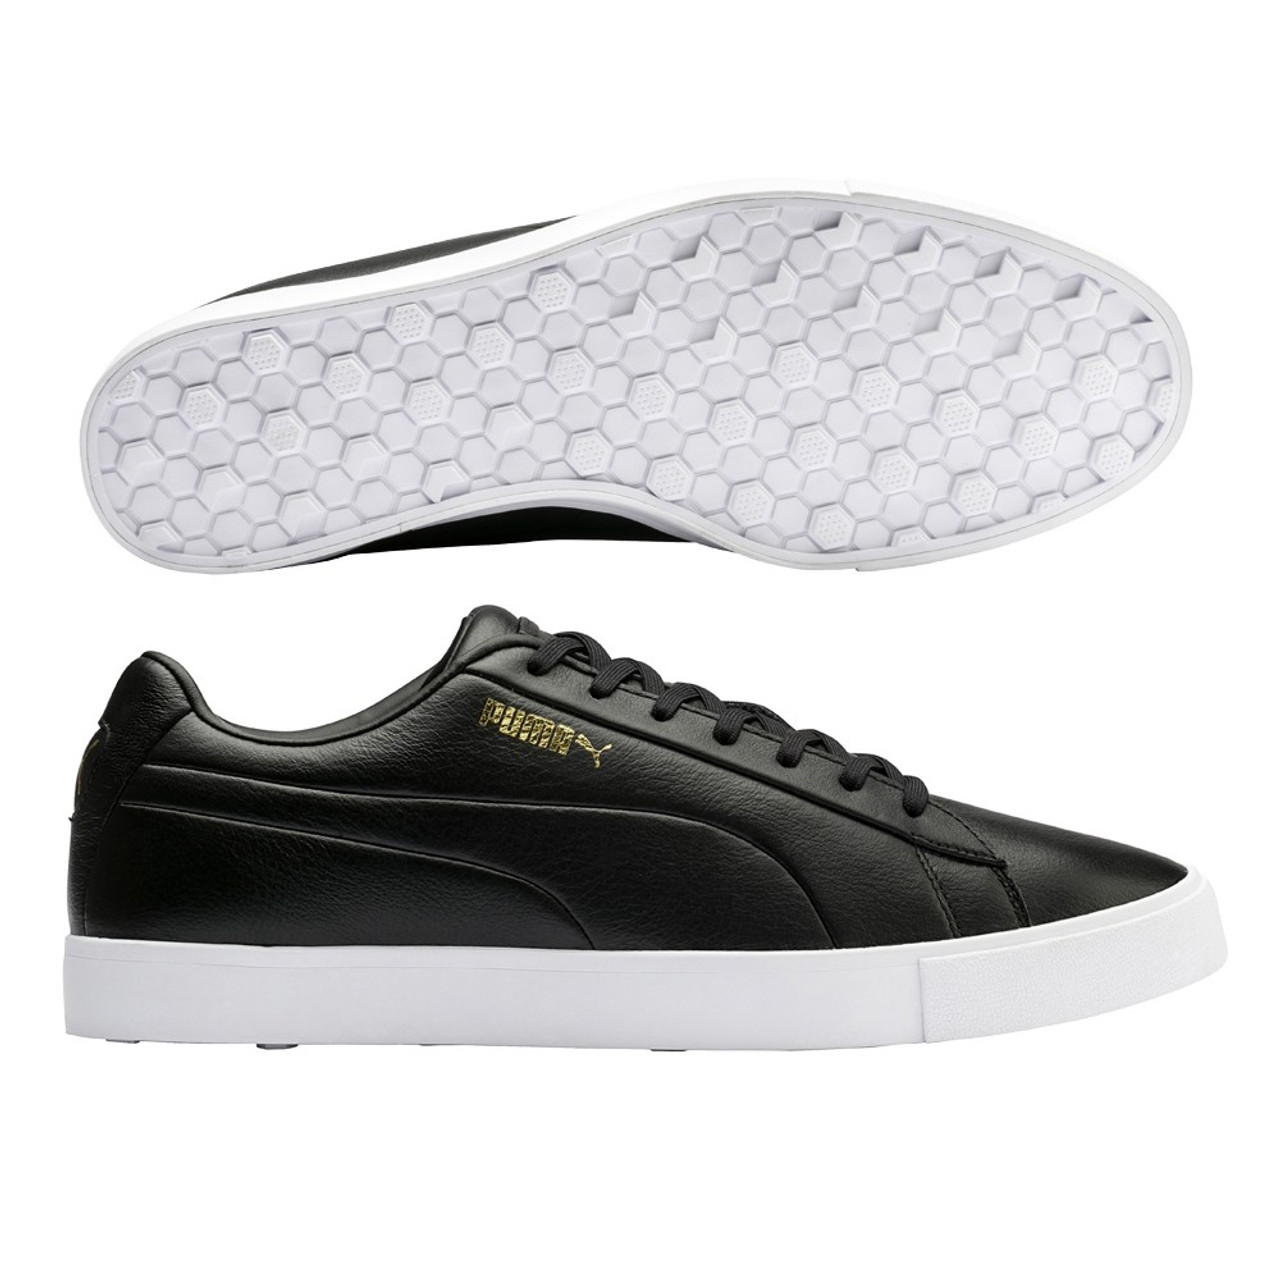 Puma Original G Golf Shoes - Black